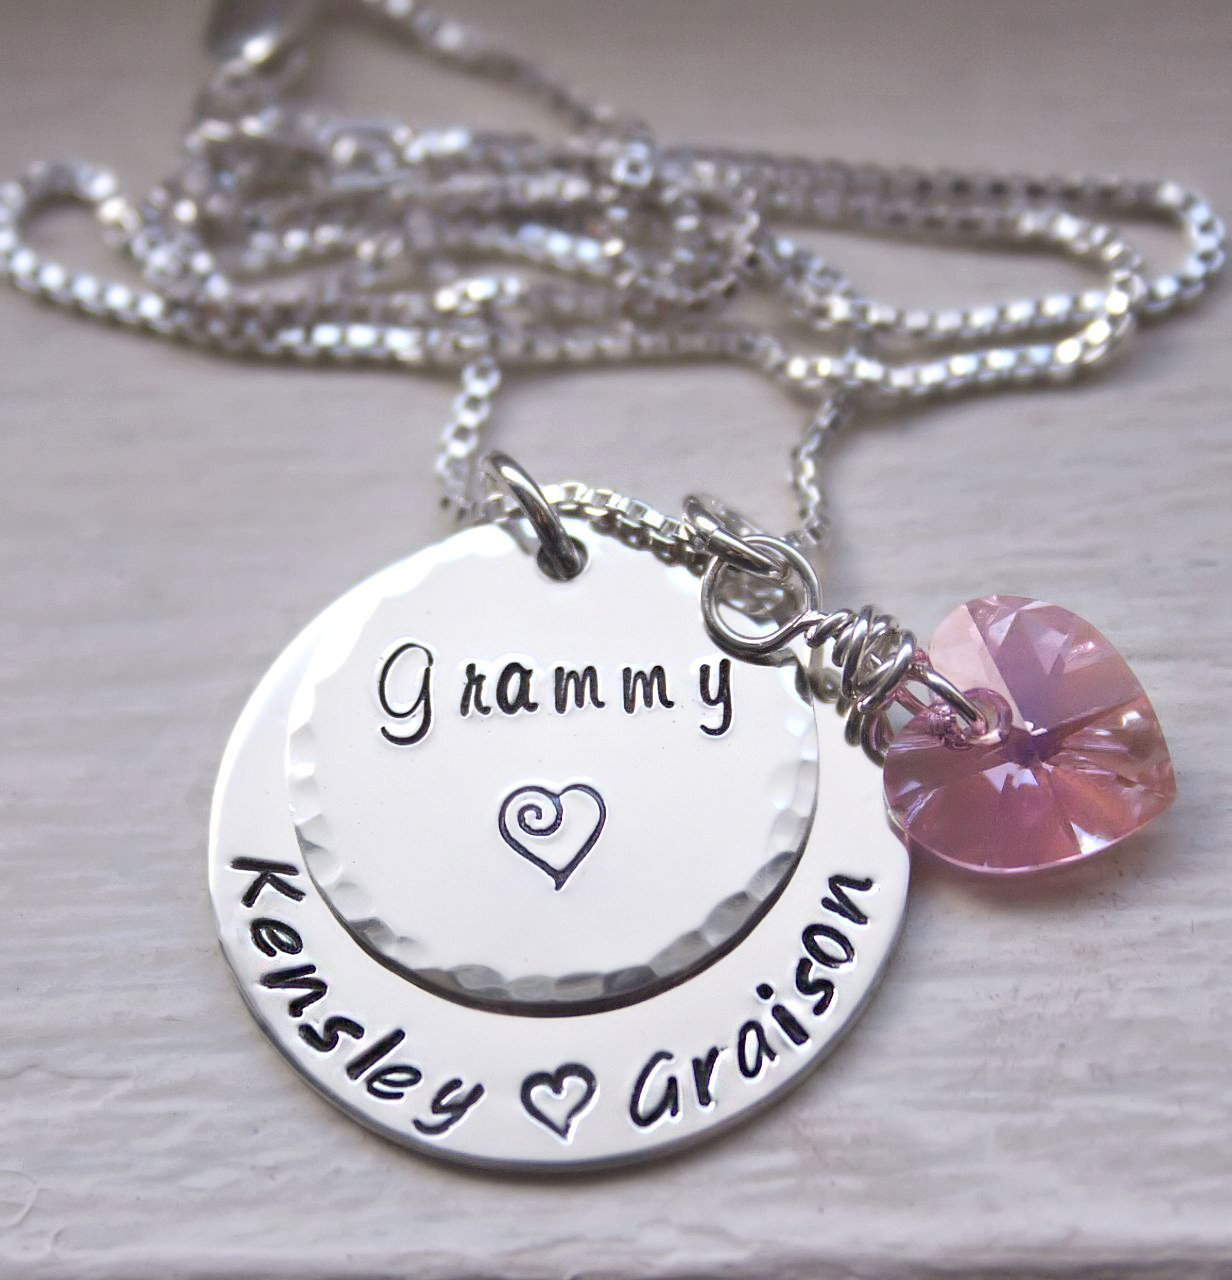 Image result for Necklace for grandma""